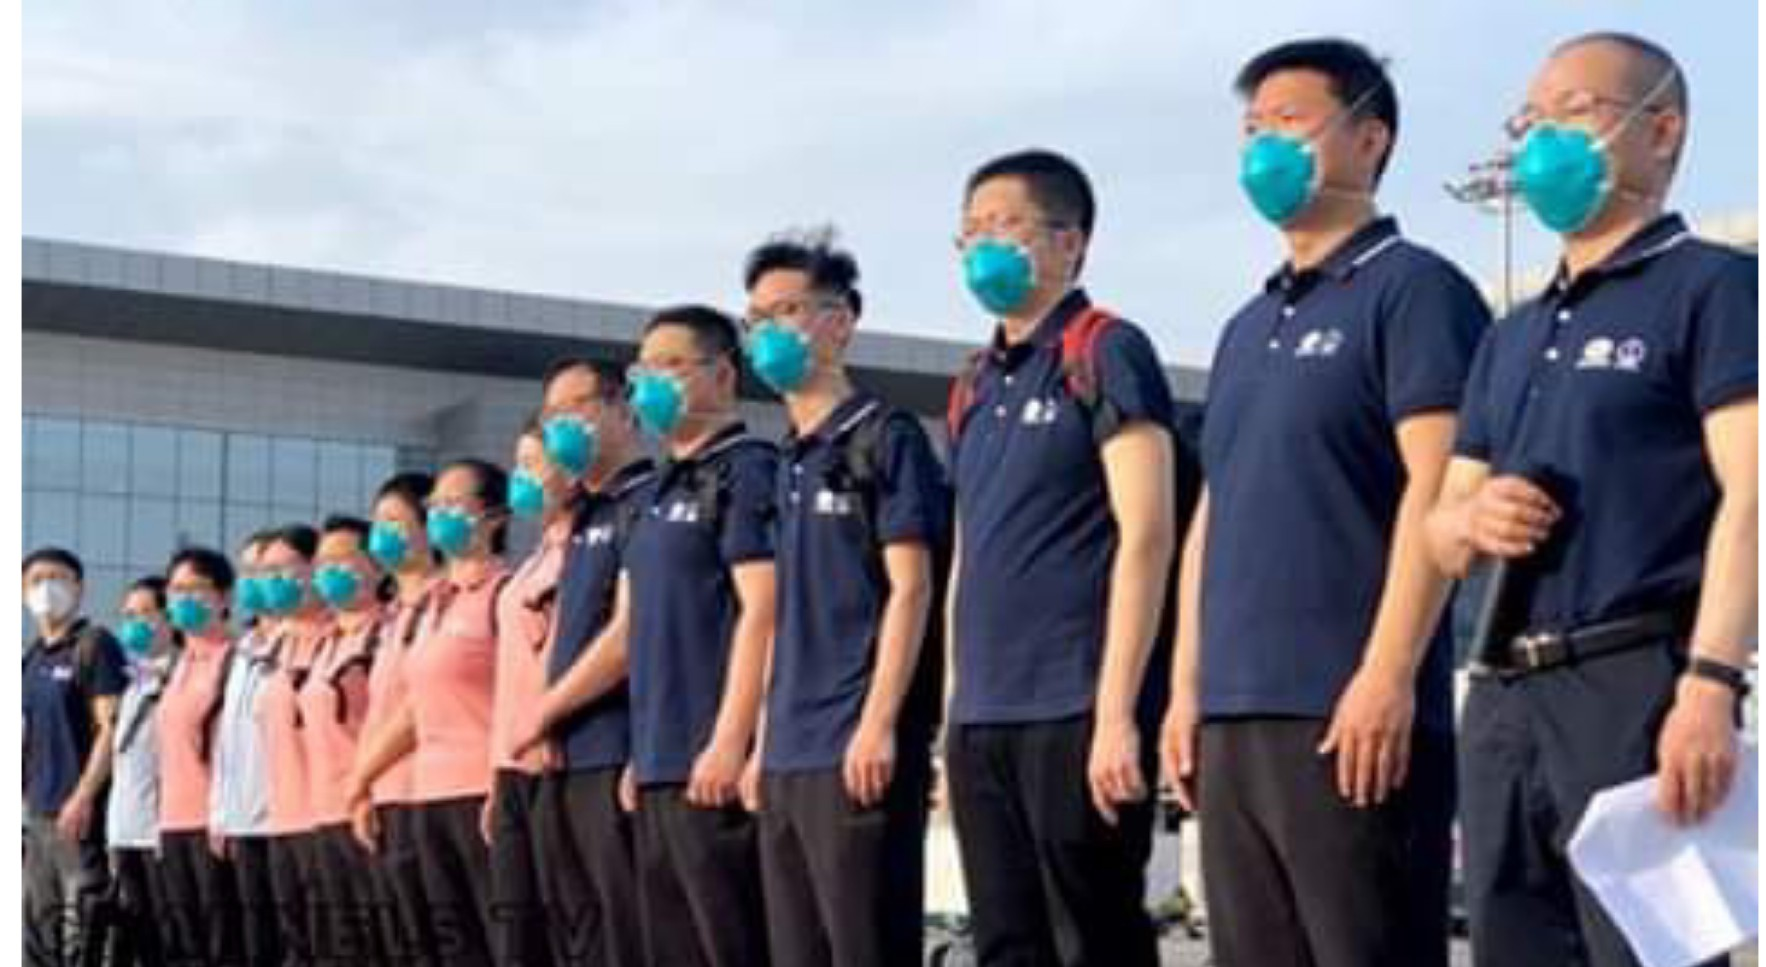 COVID-19: Chinese medical team arrives in Nigeria